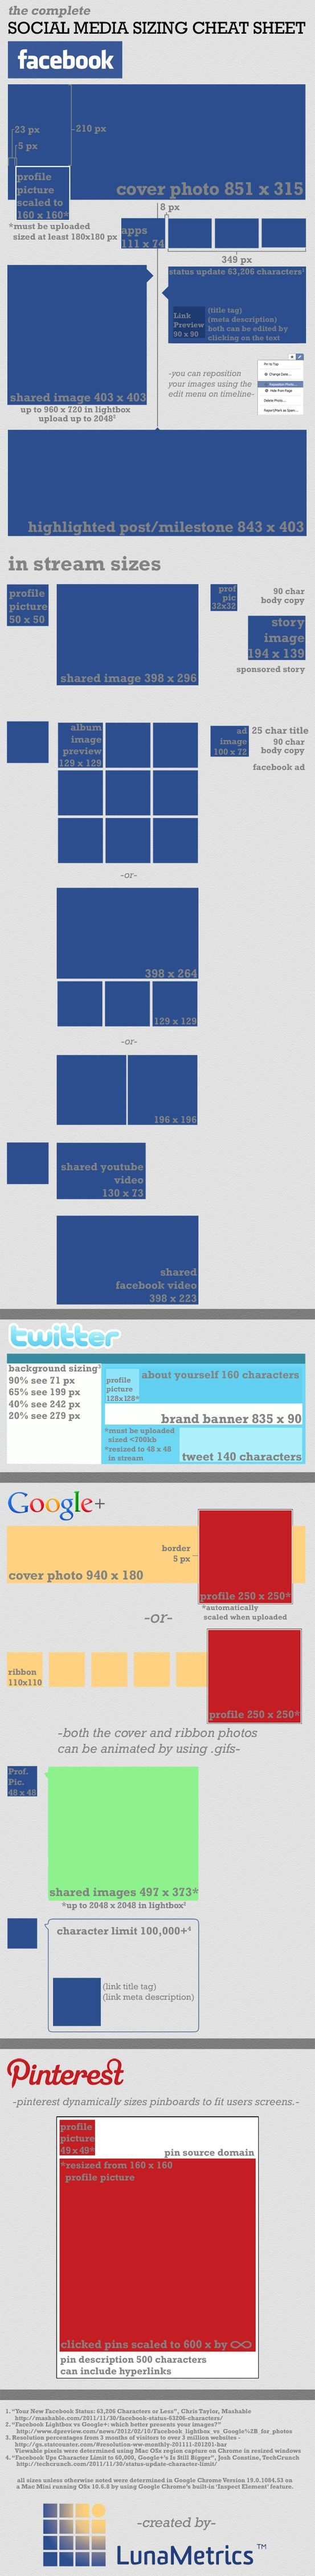 Finally, a one-sheet for all the different image sizes you need for your social media sites!  Social Media Image Sizing Cheat Sheet